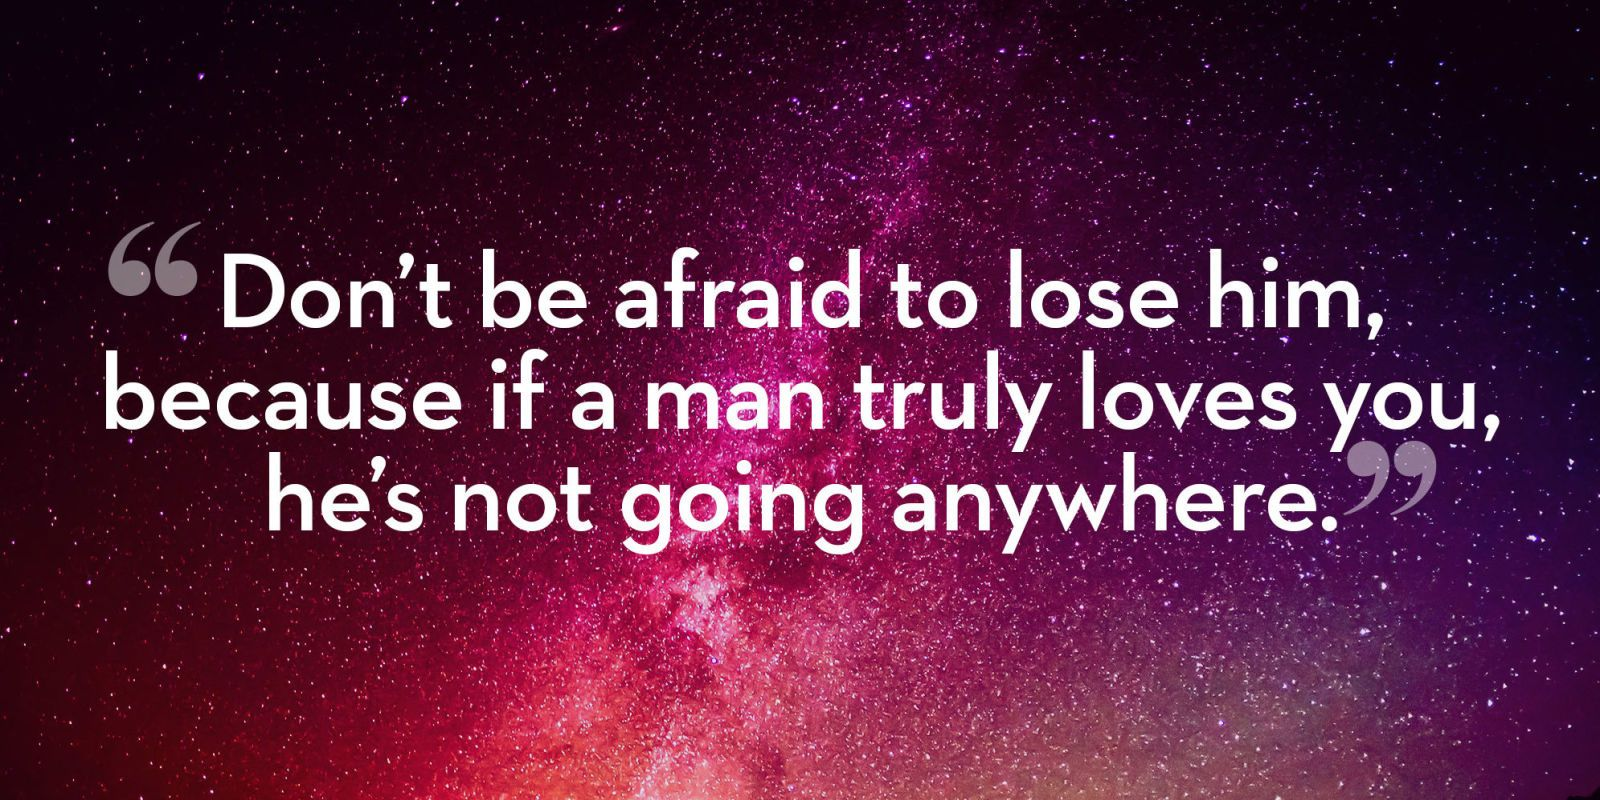 God Is Within Her She Will Not Fall Wallpaper 50 Best Relationship Quotes From Steve Harvey Steve